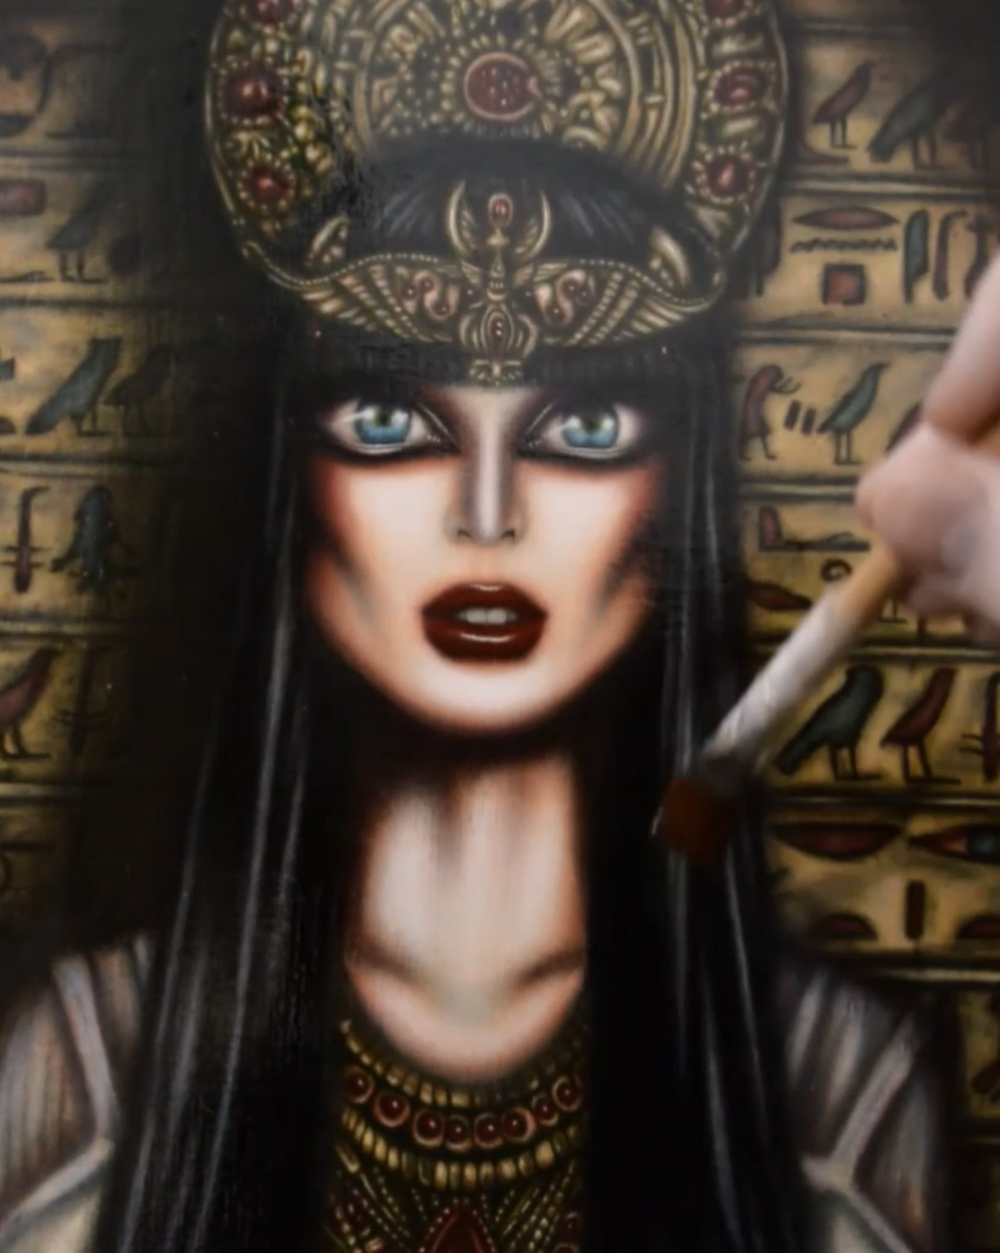 painting of cleopatra with blue eyes a crown and hieroglyphs behind her by tiago azevedo a lowbrow pop surrealism artist